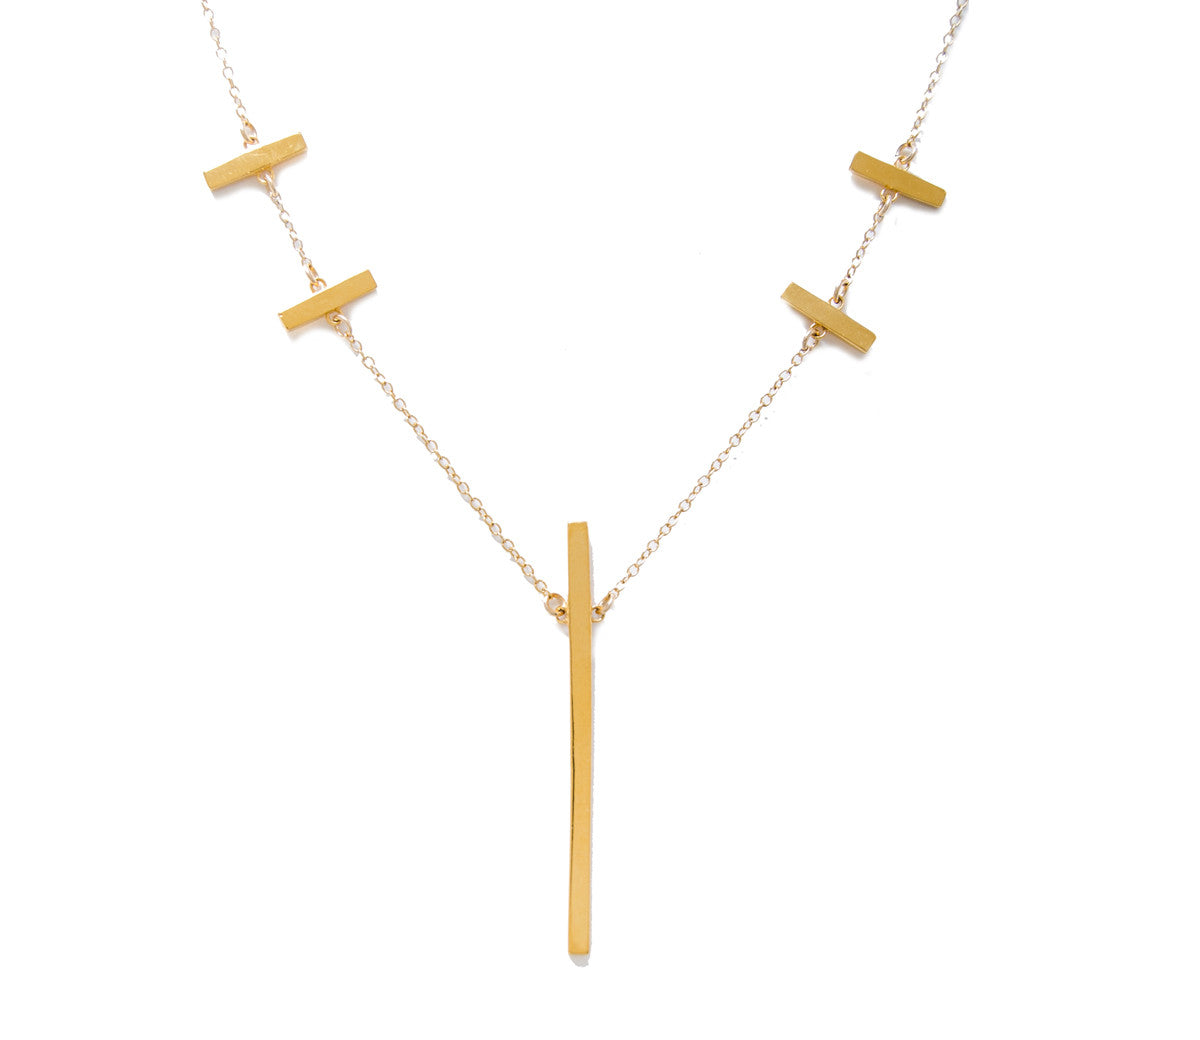 FLYING BAR NECKLACE